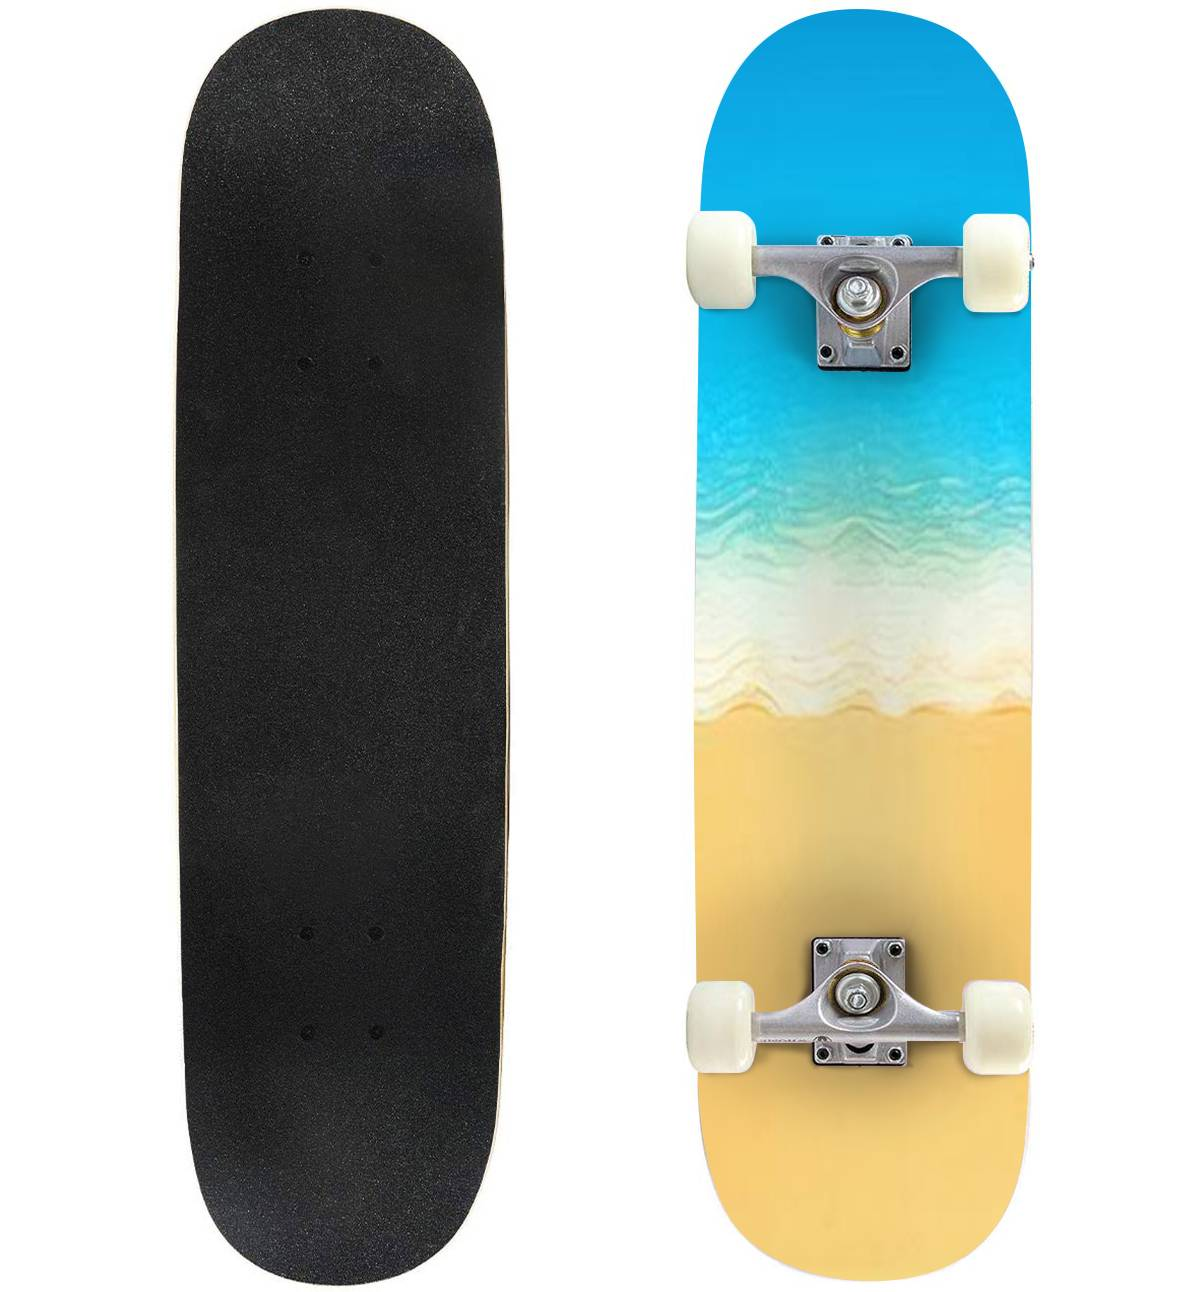 Classic Concave Skateboard Giraffe Vector Two tanding Behind The treesat Sunset Longboard Maple Deck Extreme Sports and Outdoors Double Kick Trick for Beginners and Professionals